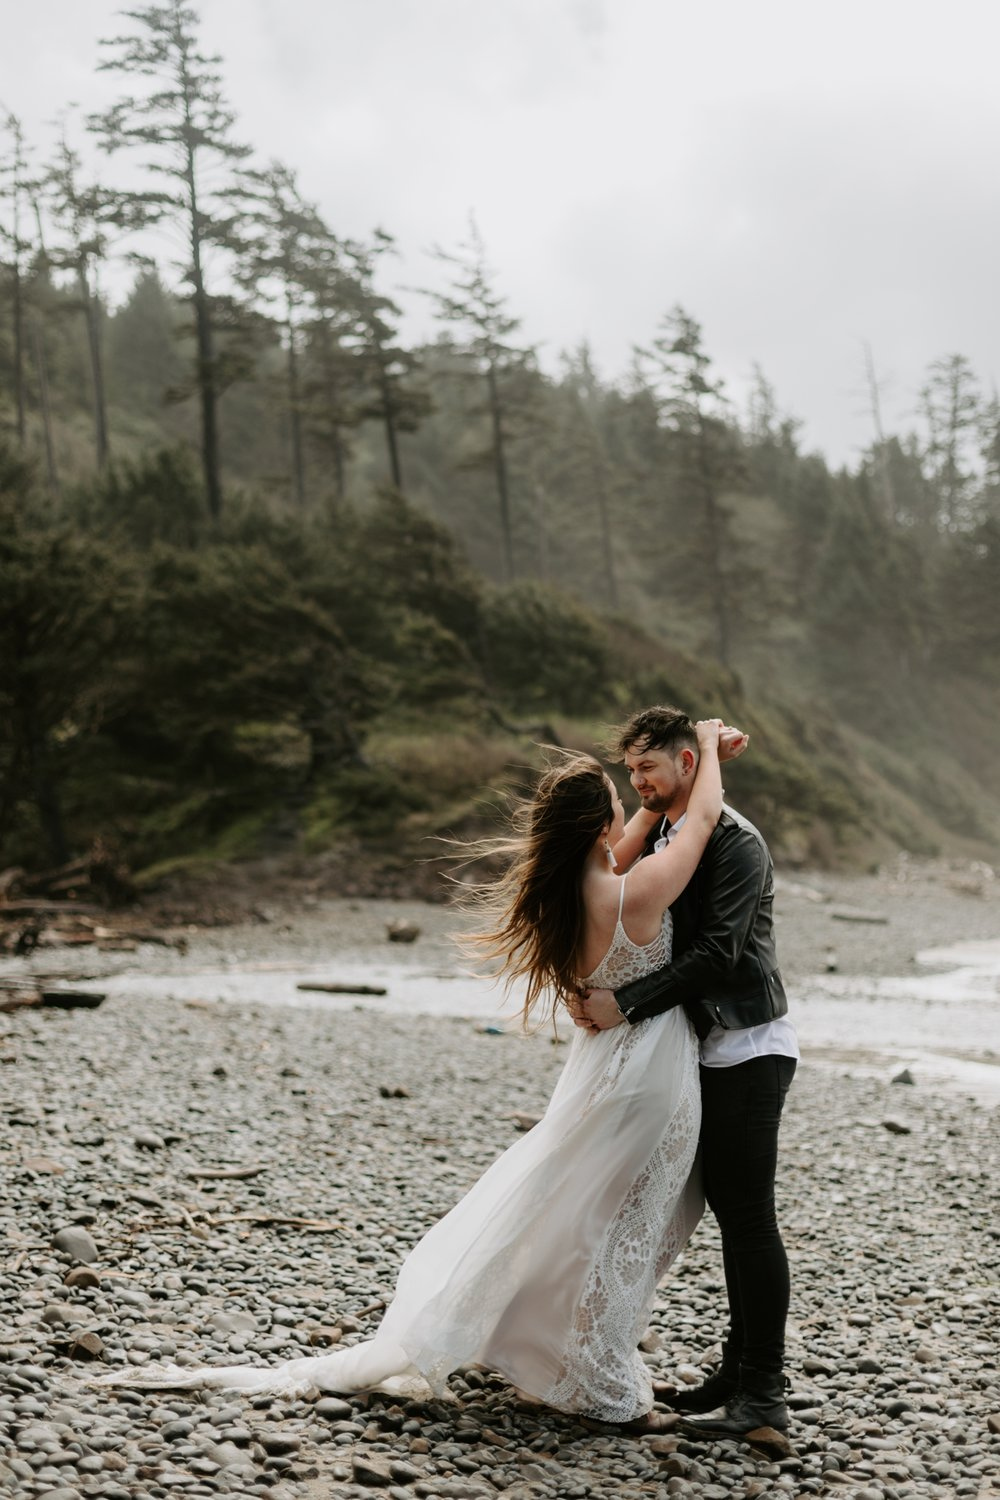 adventurous-cannon-beach-elopement-2018-04-26_0022.jpg